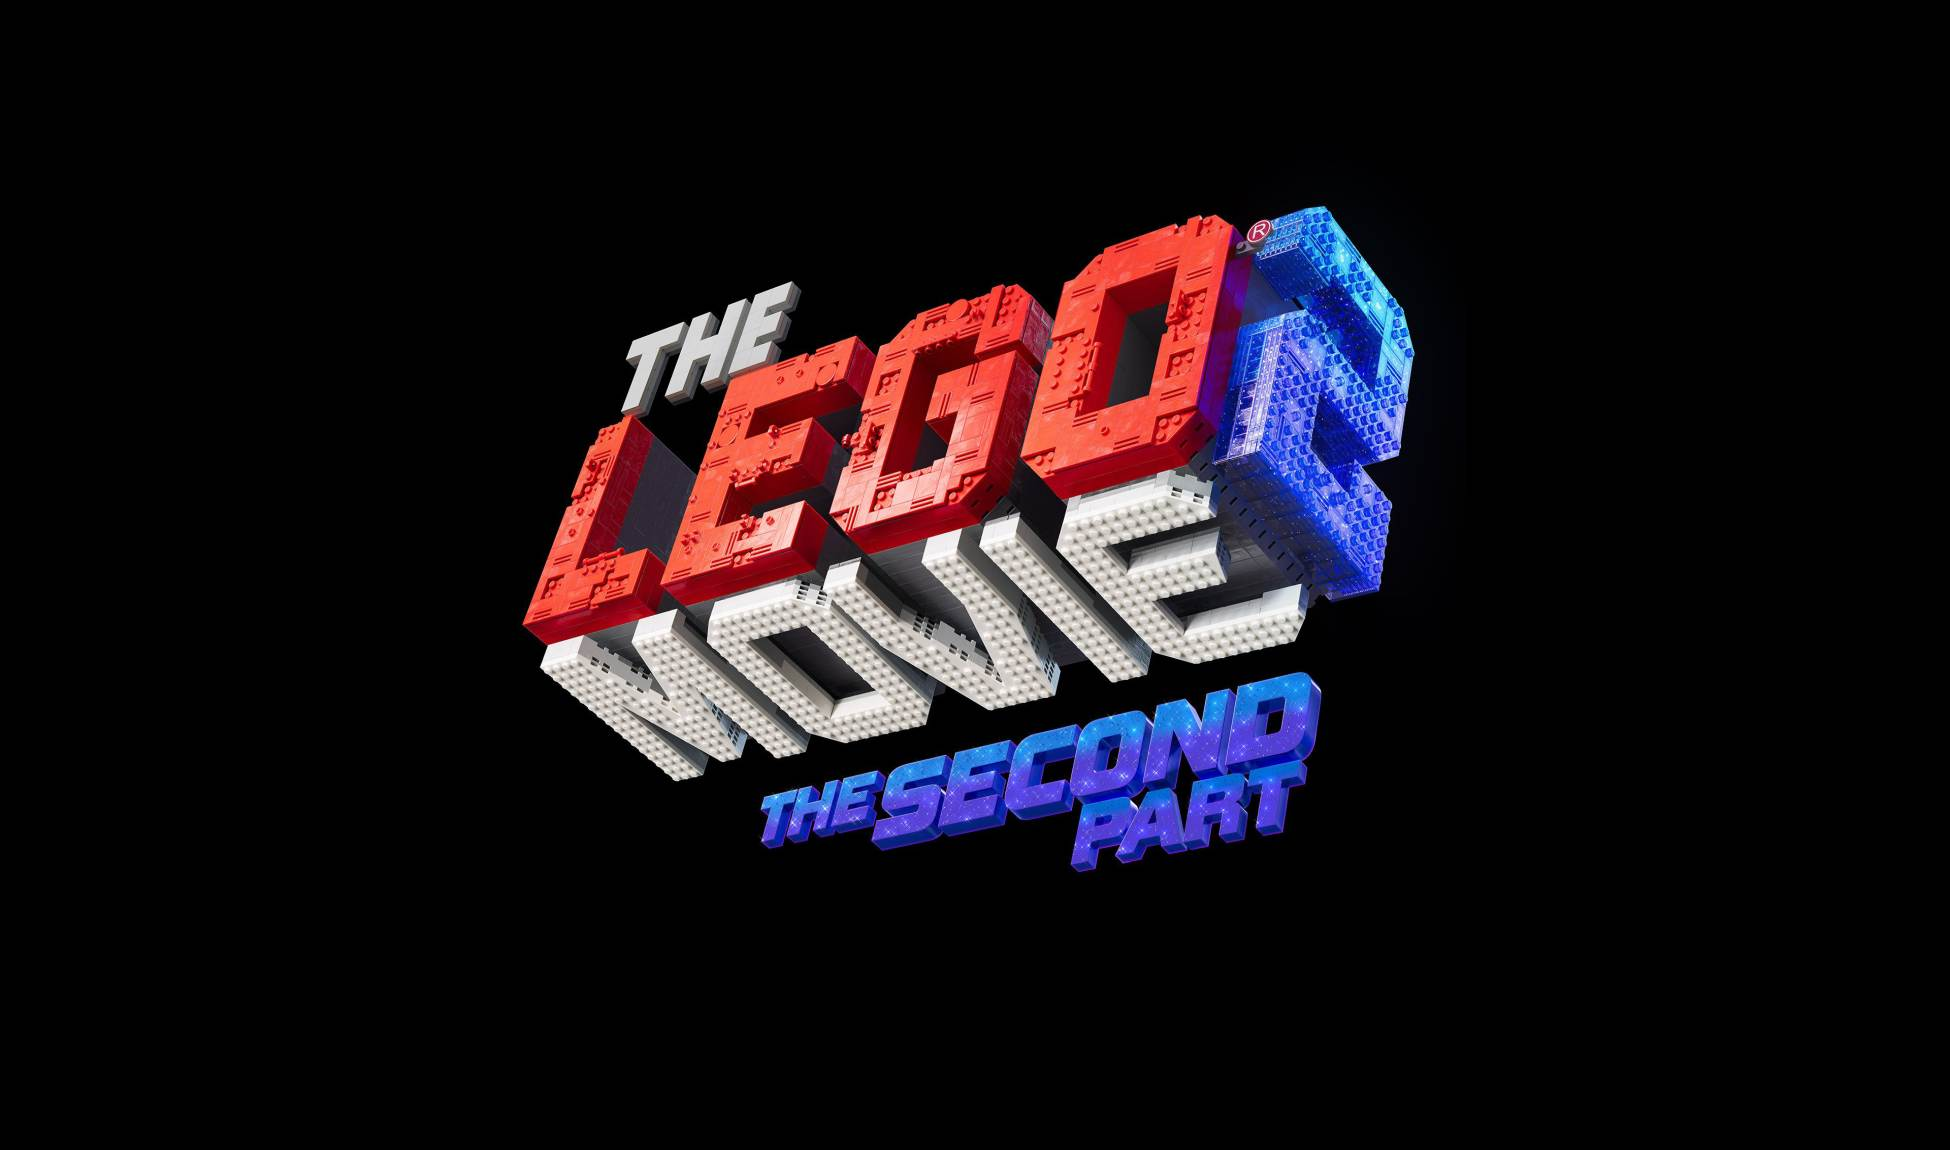 The Lego Movie 2: pubblicato il primo trailer!